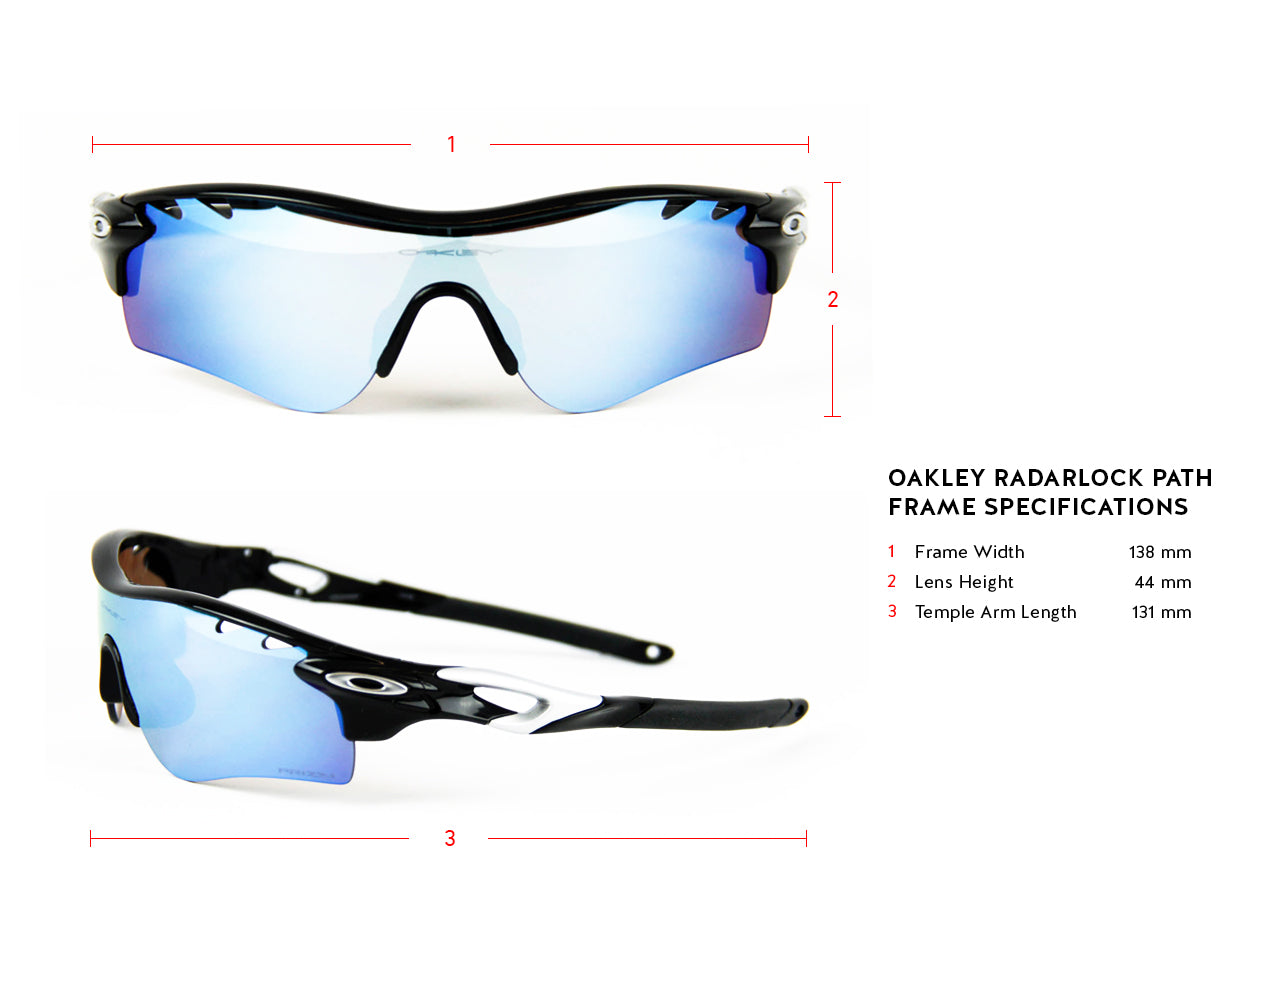 Oakley RadarLock Path Frame Specifications